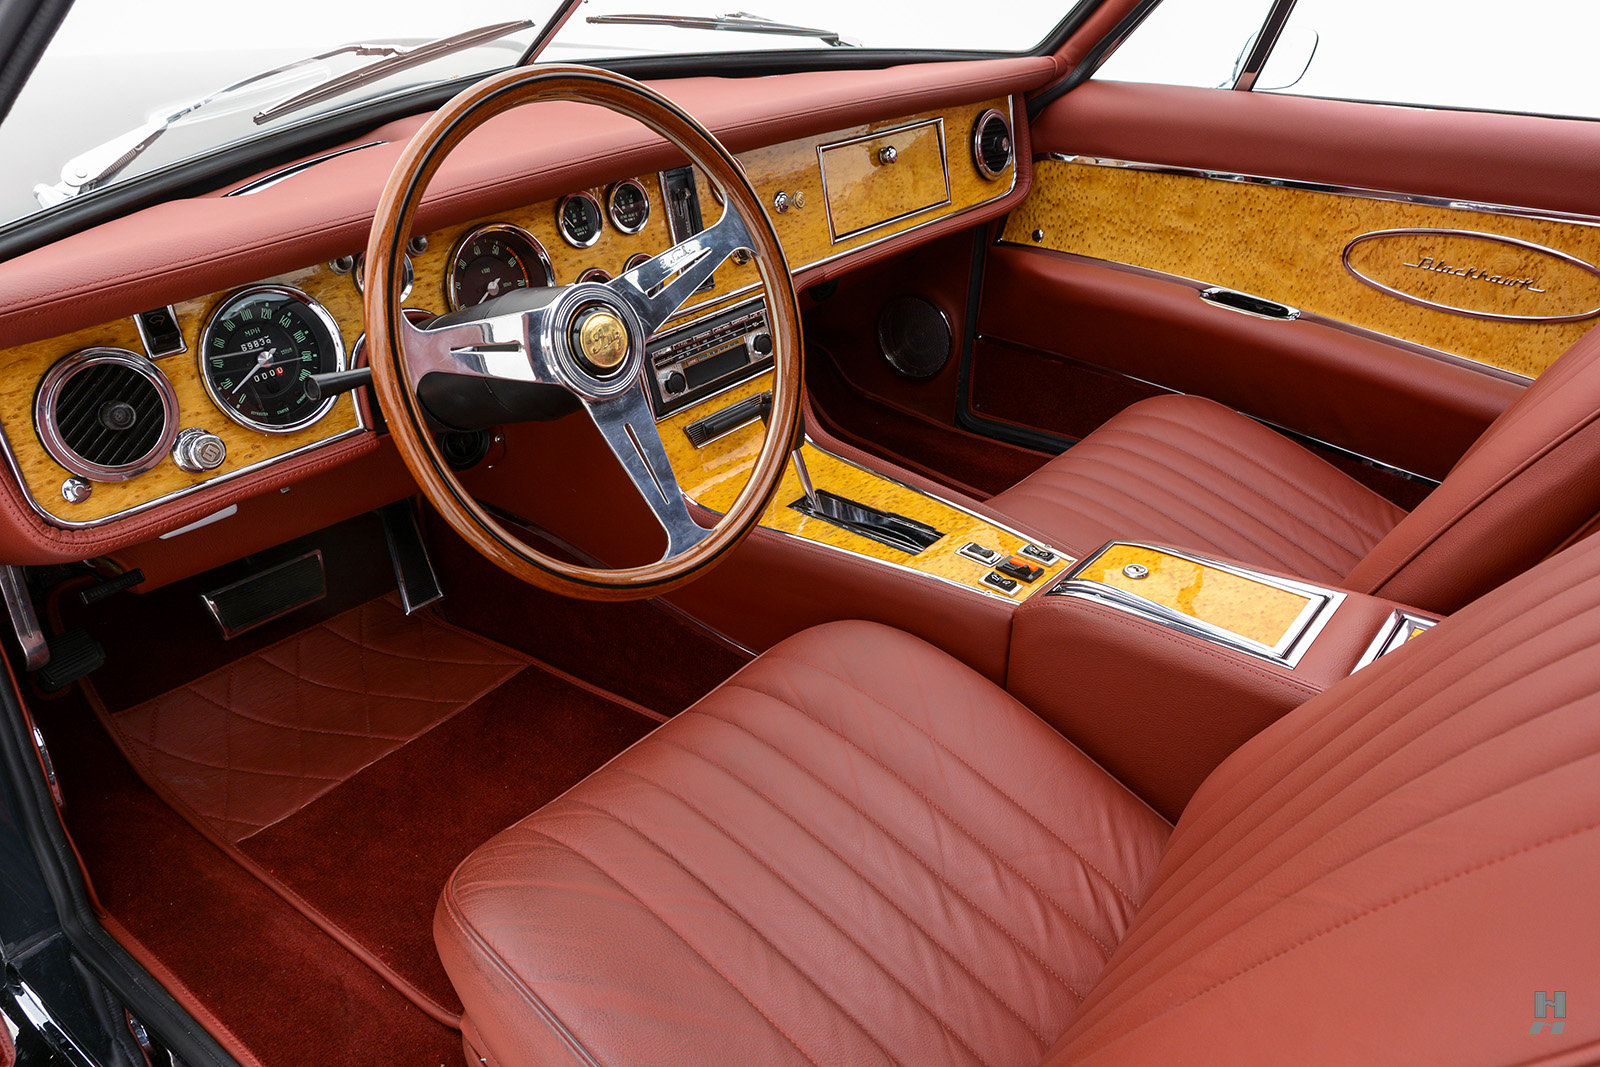 1971 STUTZ BLACKHAWK SERIES 1 COUPE For Sale (picture 4 of 6)